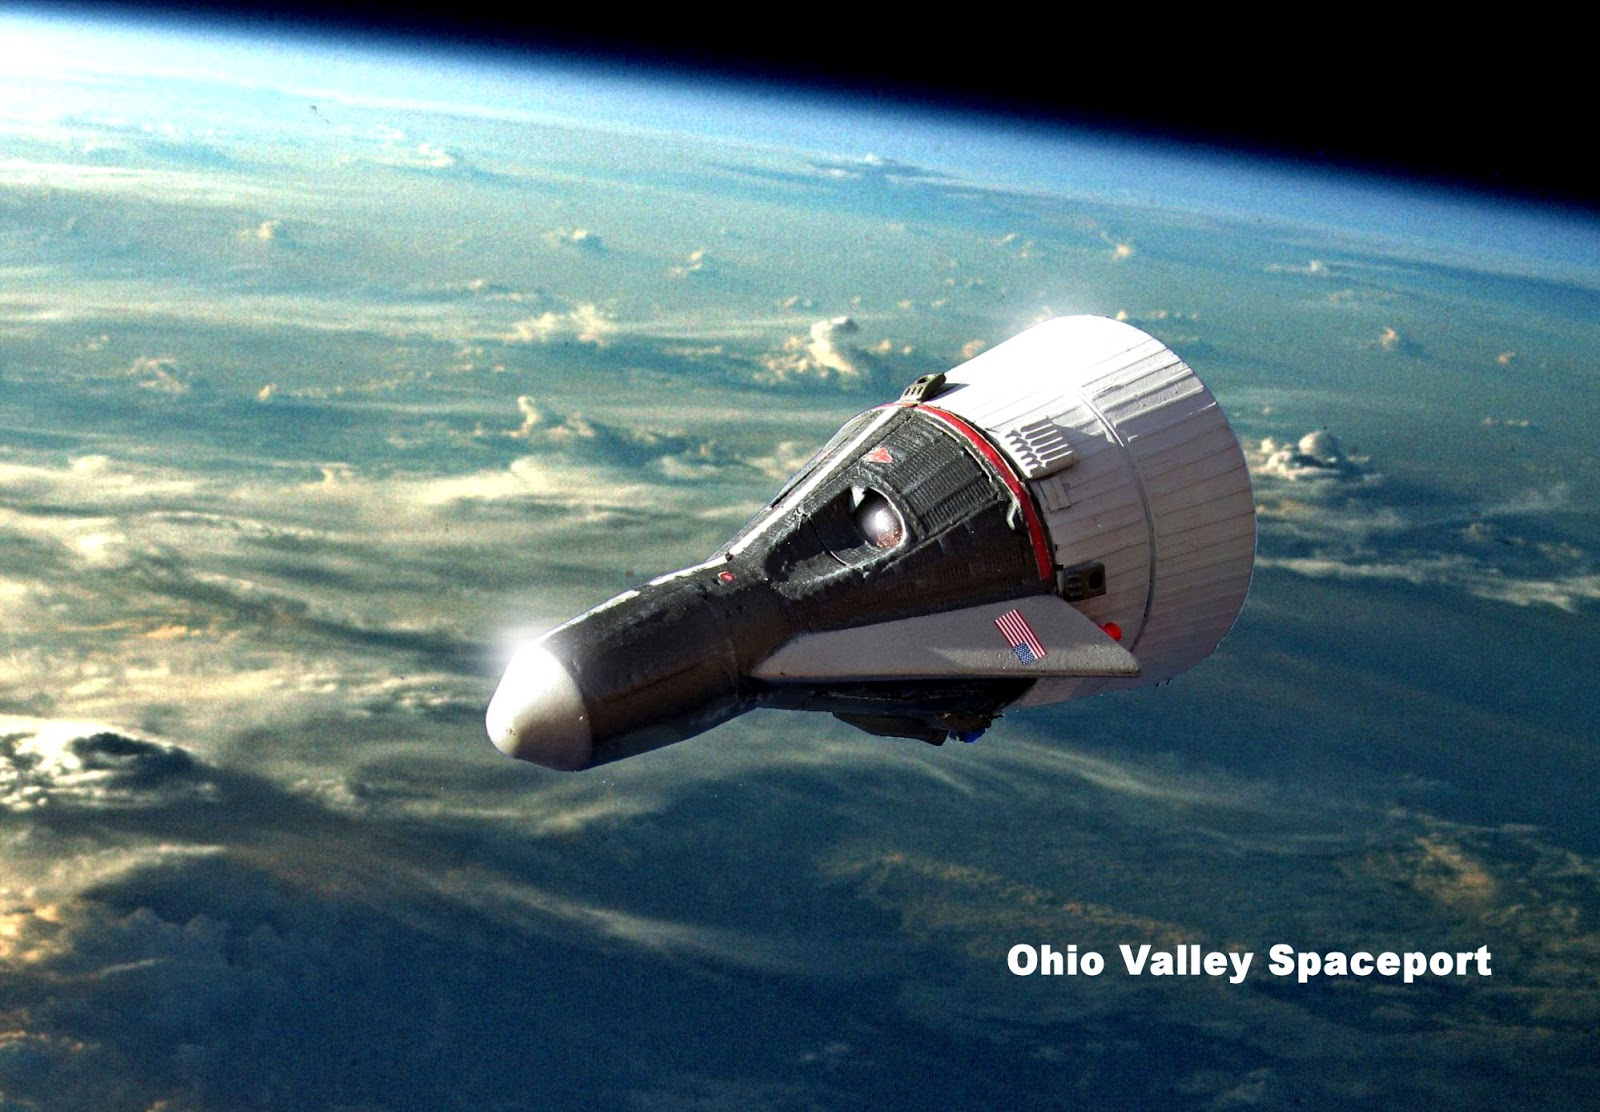 Ohio Valley Spaceport